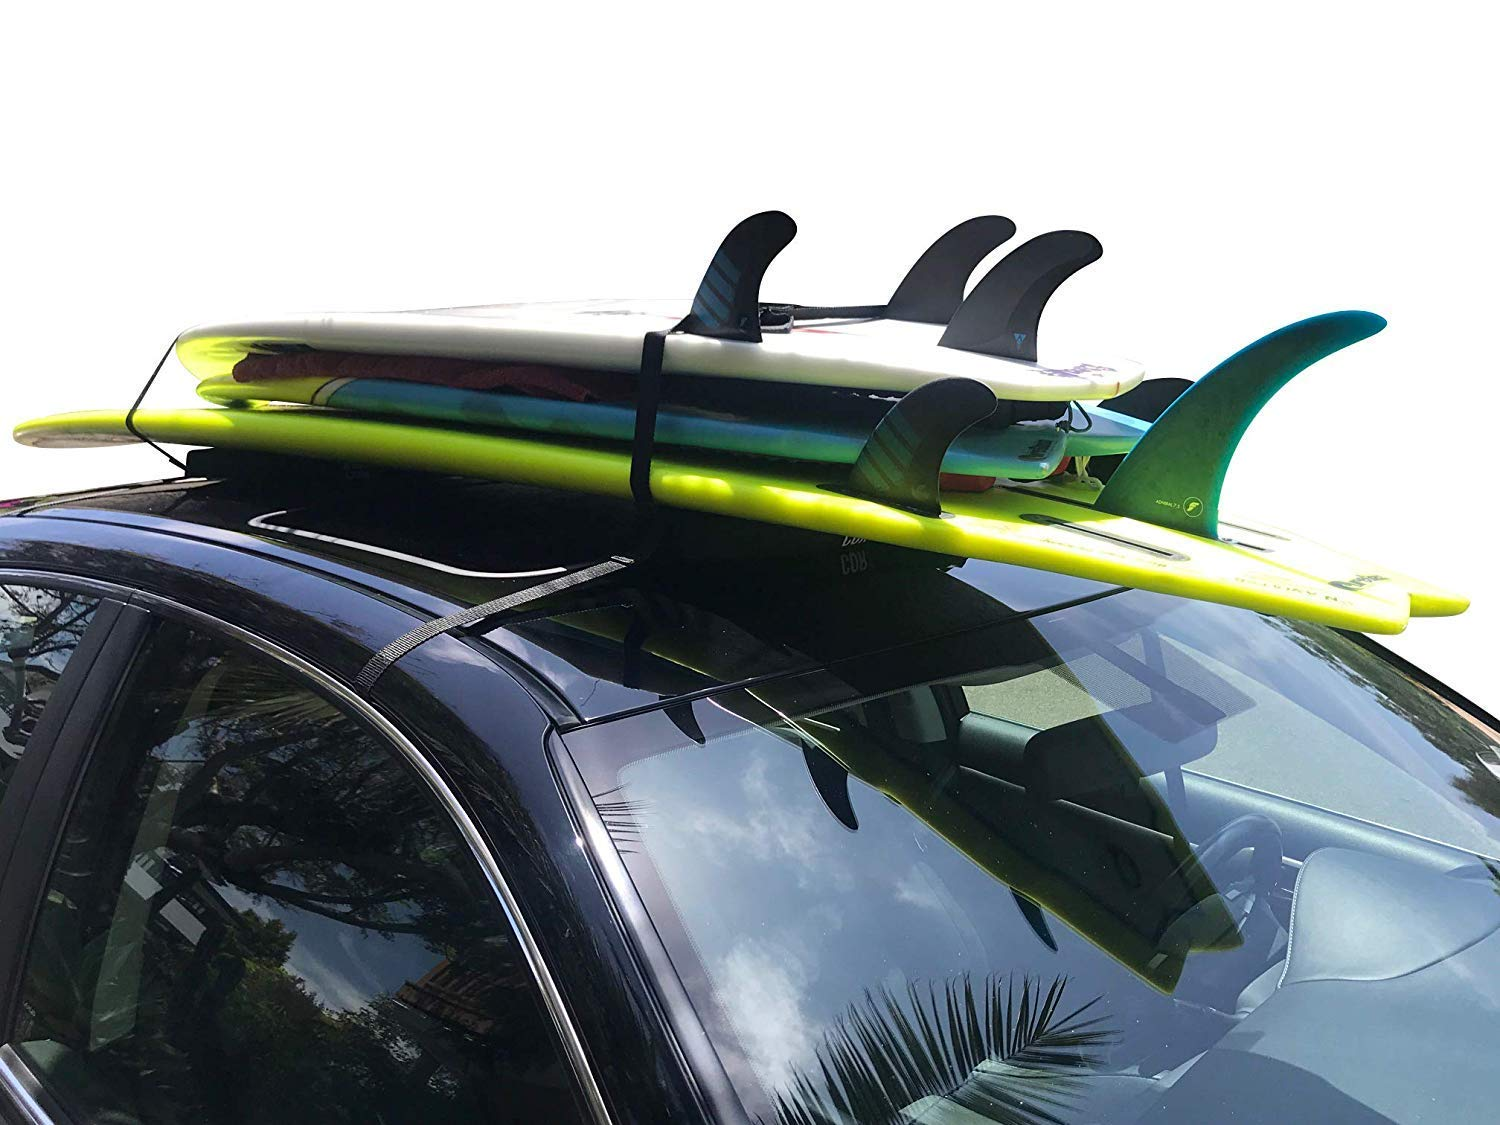 Universal Car Soft Roof Rack Pad & Luggage Carrier Anti-Vibration System - with Storage Bag (28 Inches) by COR Surf